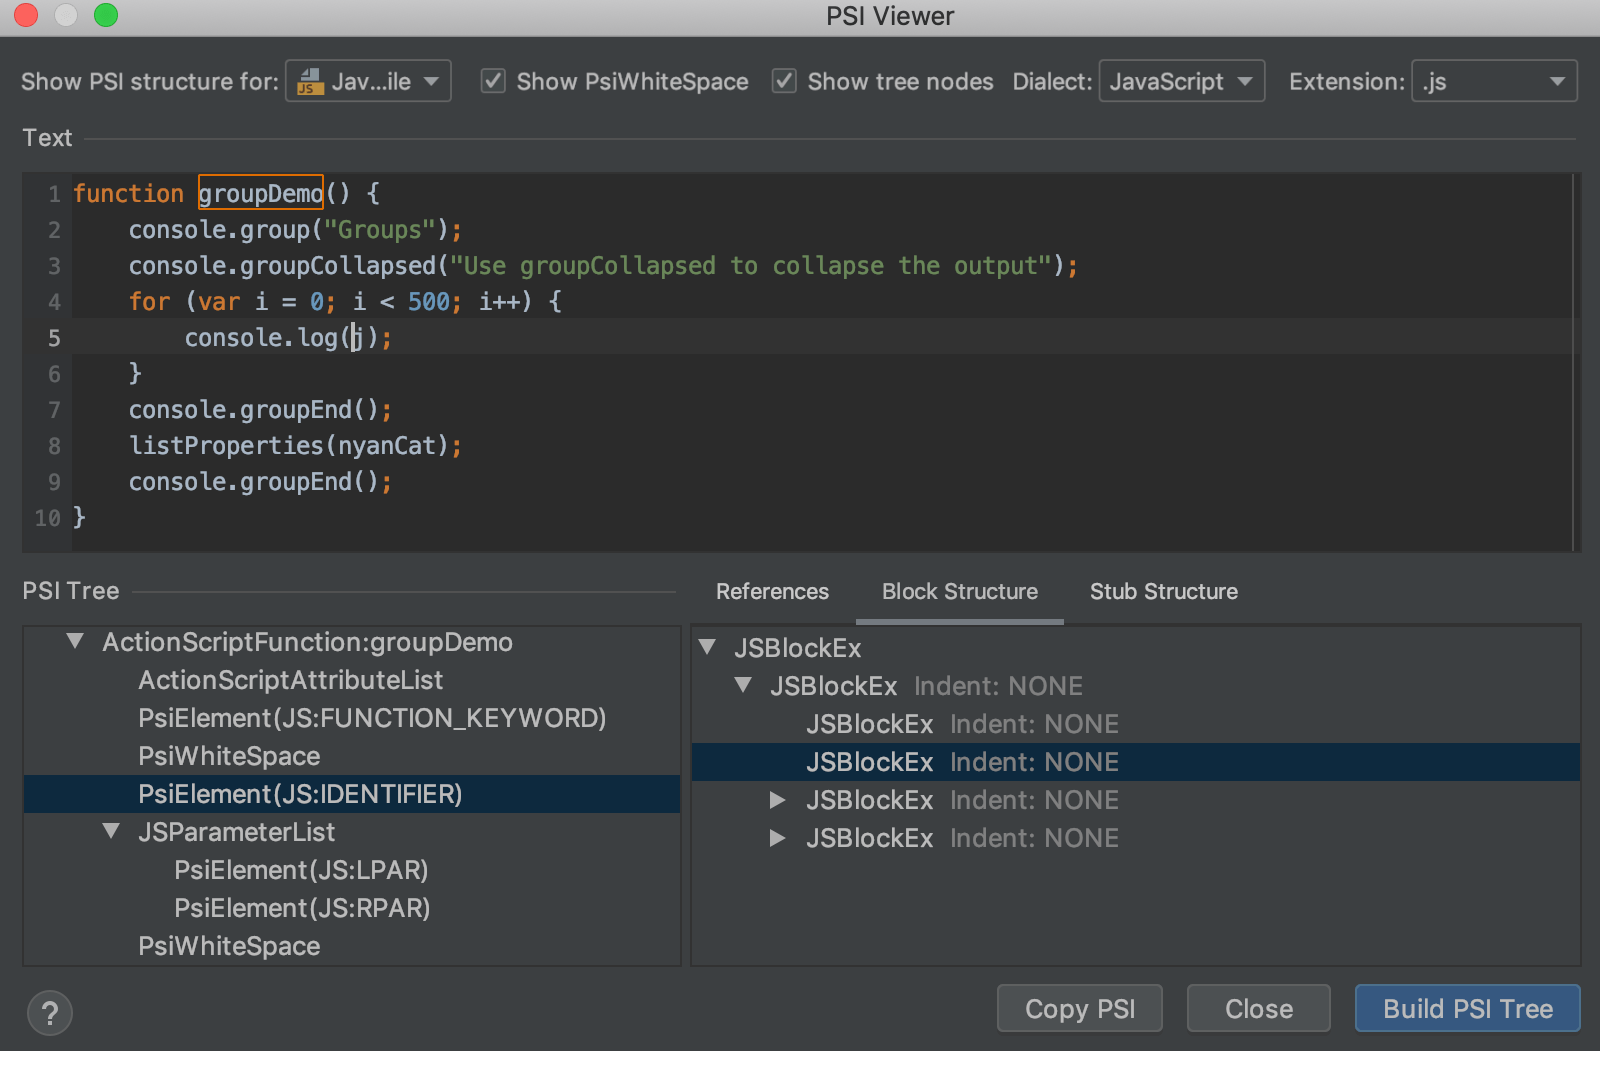 PSI Viewer - Help | WebStorm